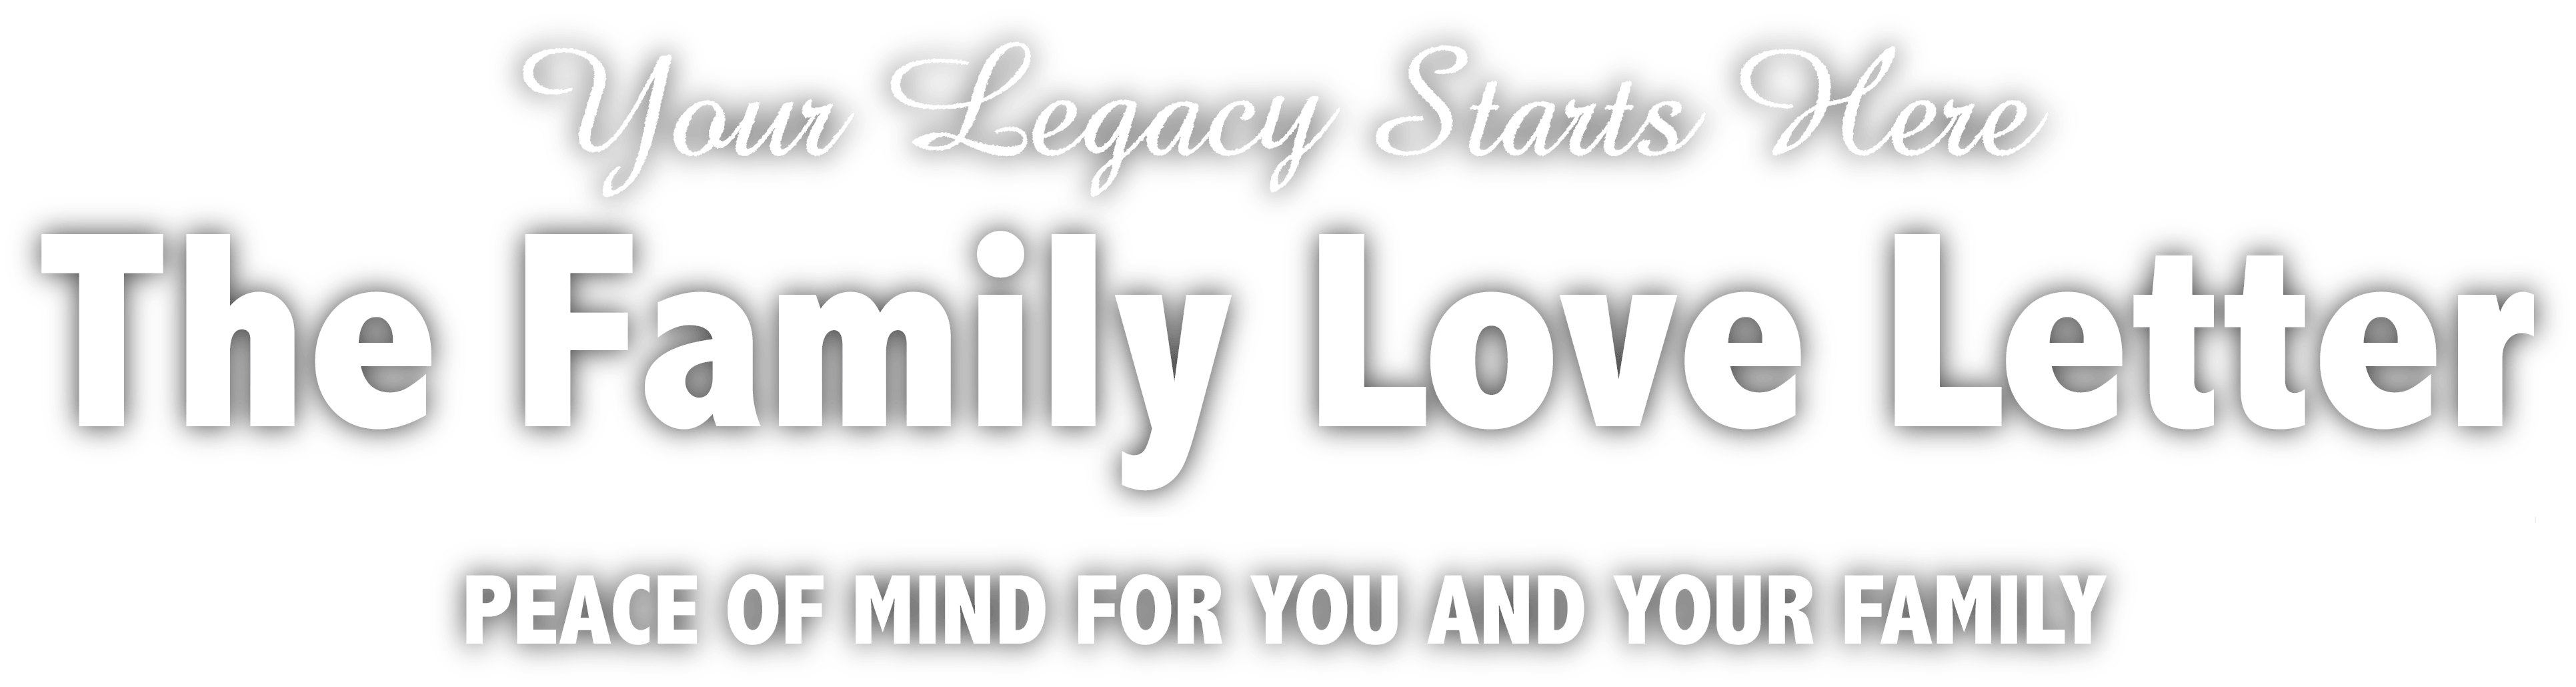 your-legacy-sarts-here-min